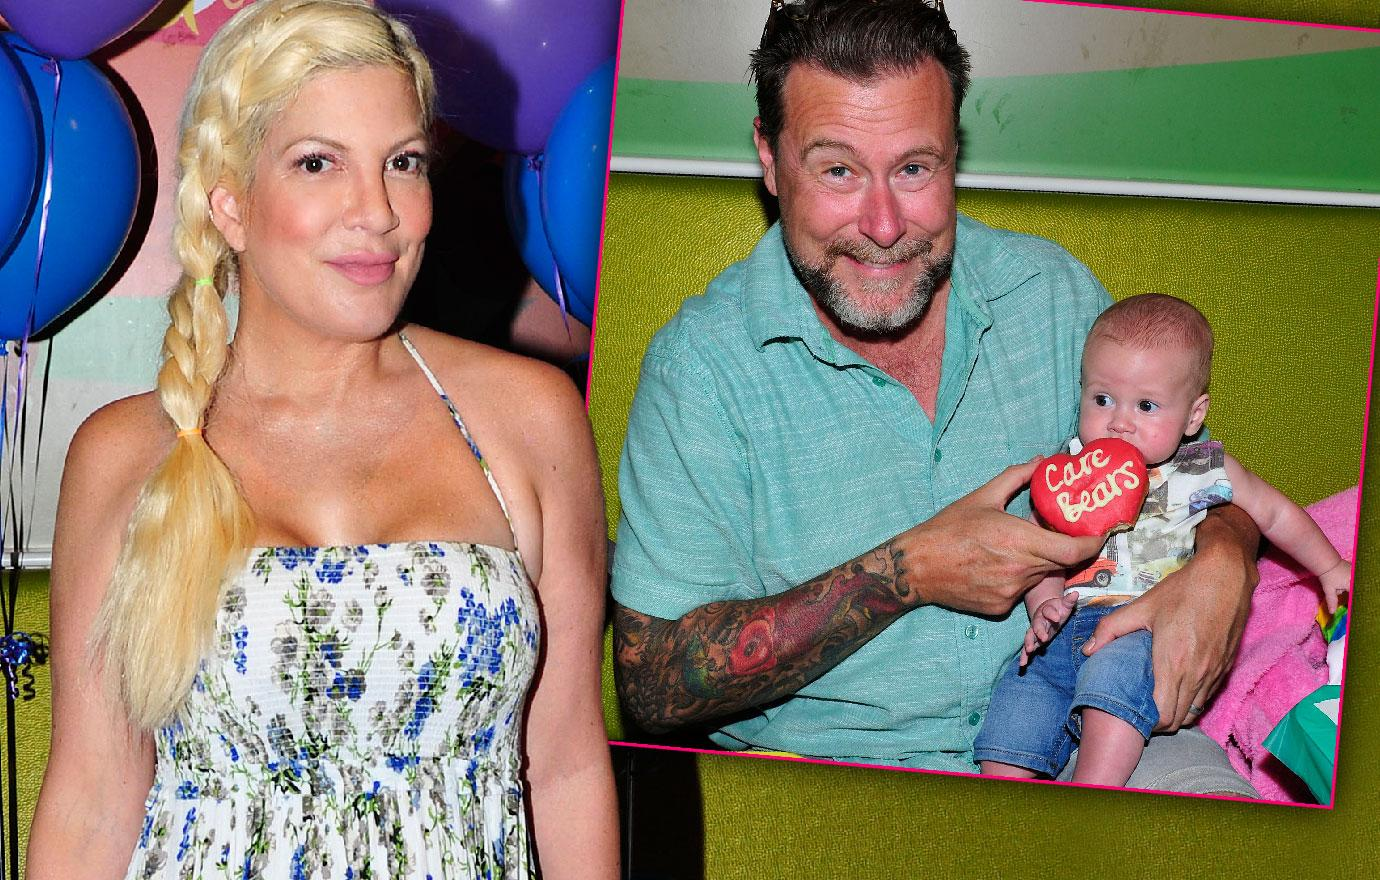 Tori Spelling Dean McDermott Attend Kids Event Financial Crisis